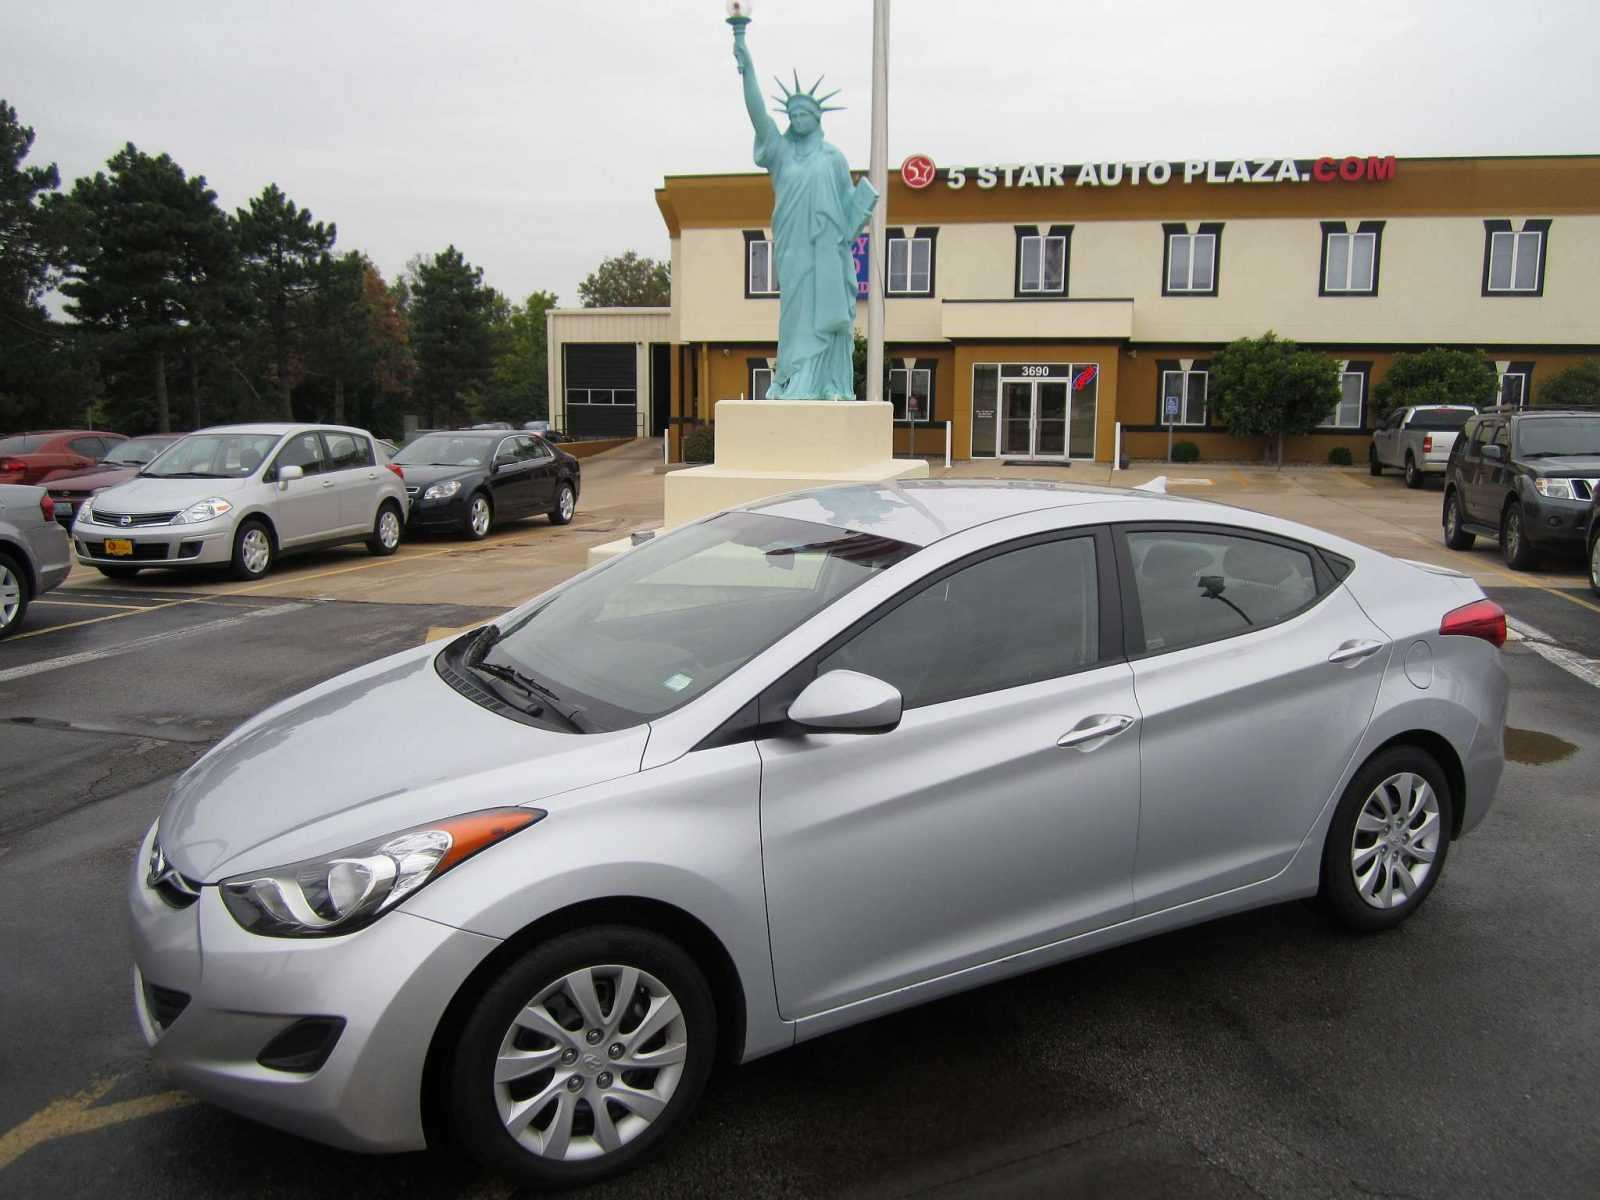 Pre owned hyundai cars for sale in st charles mo finder for Plaza mercedes benz st louis